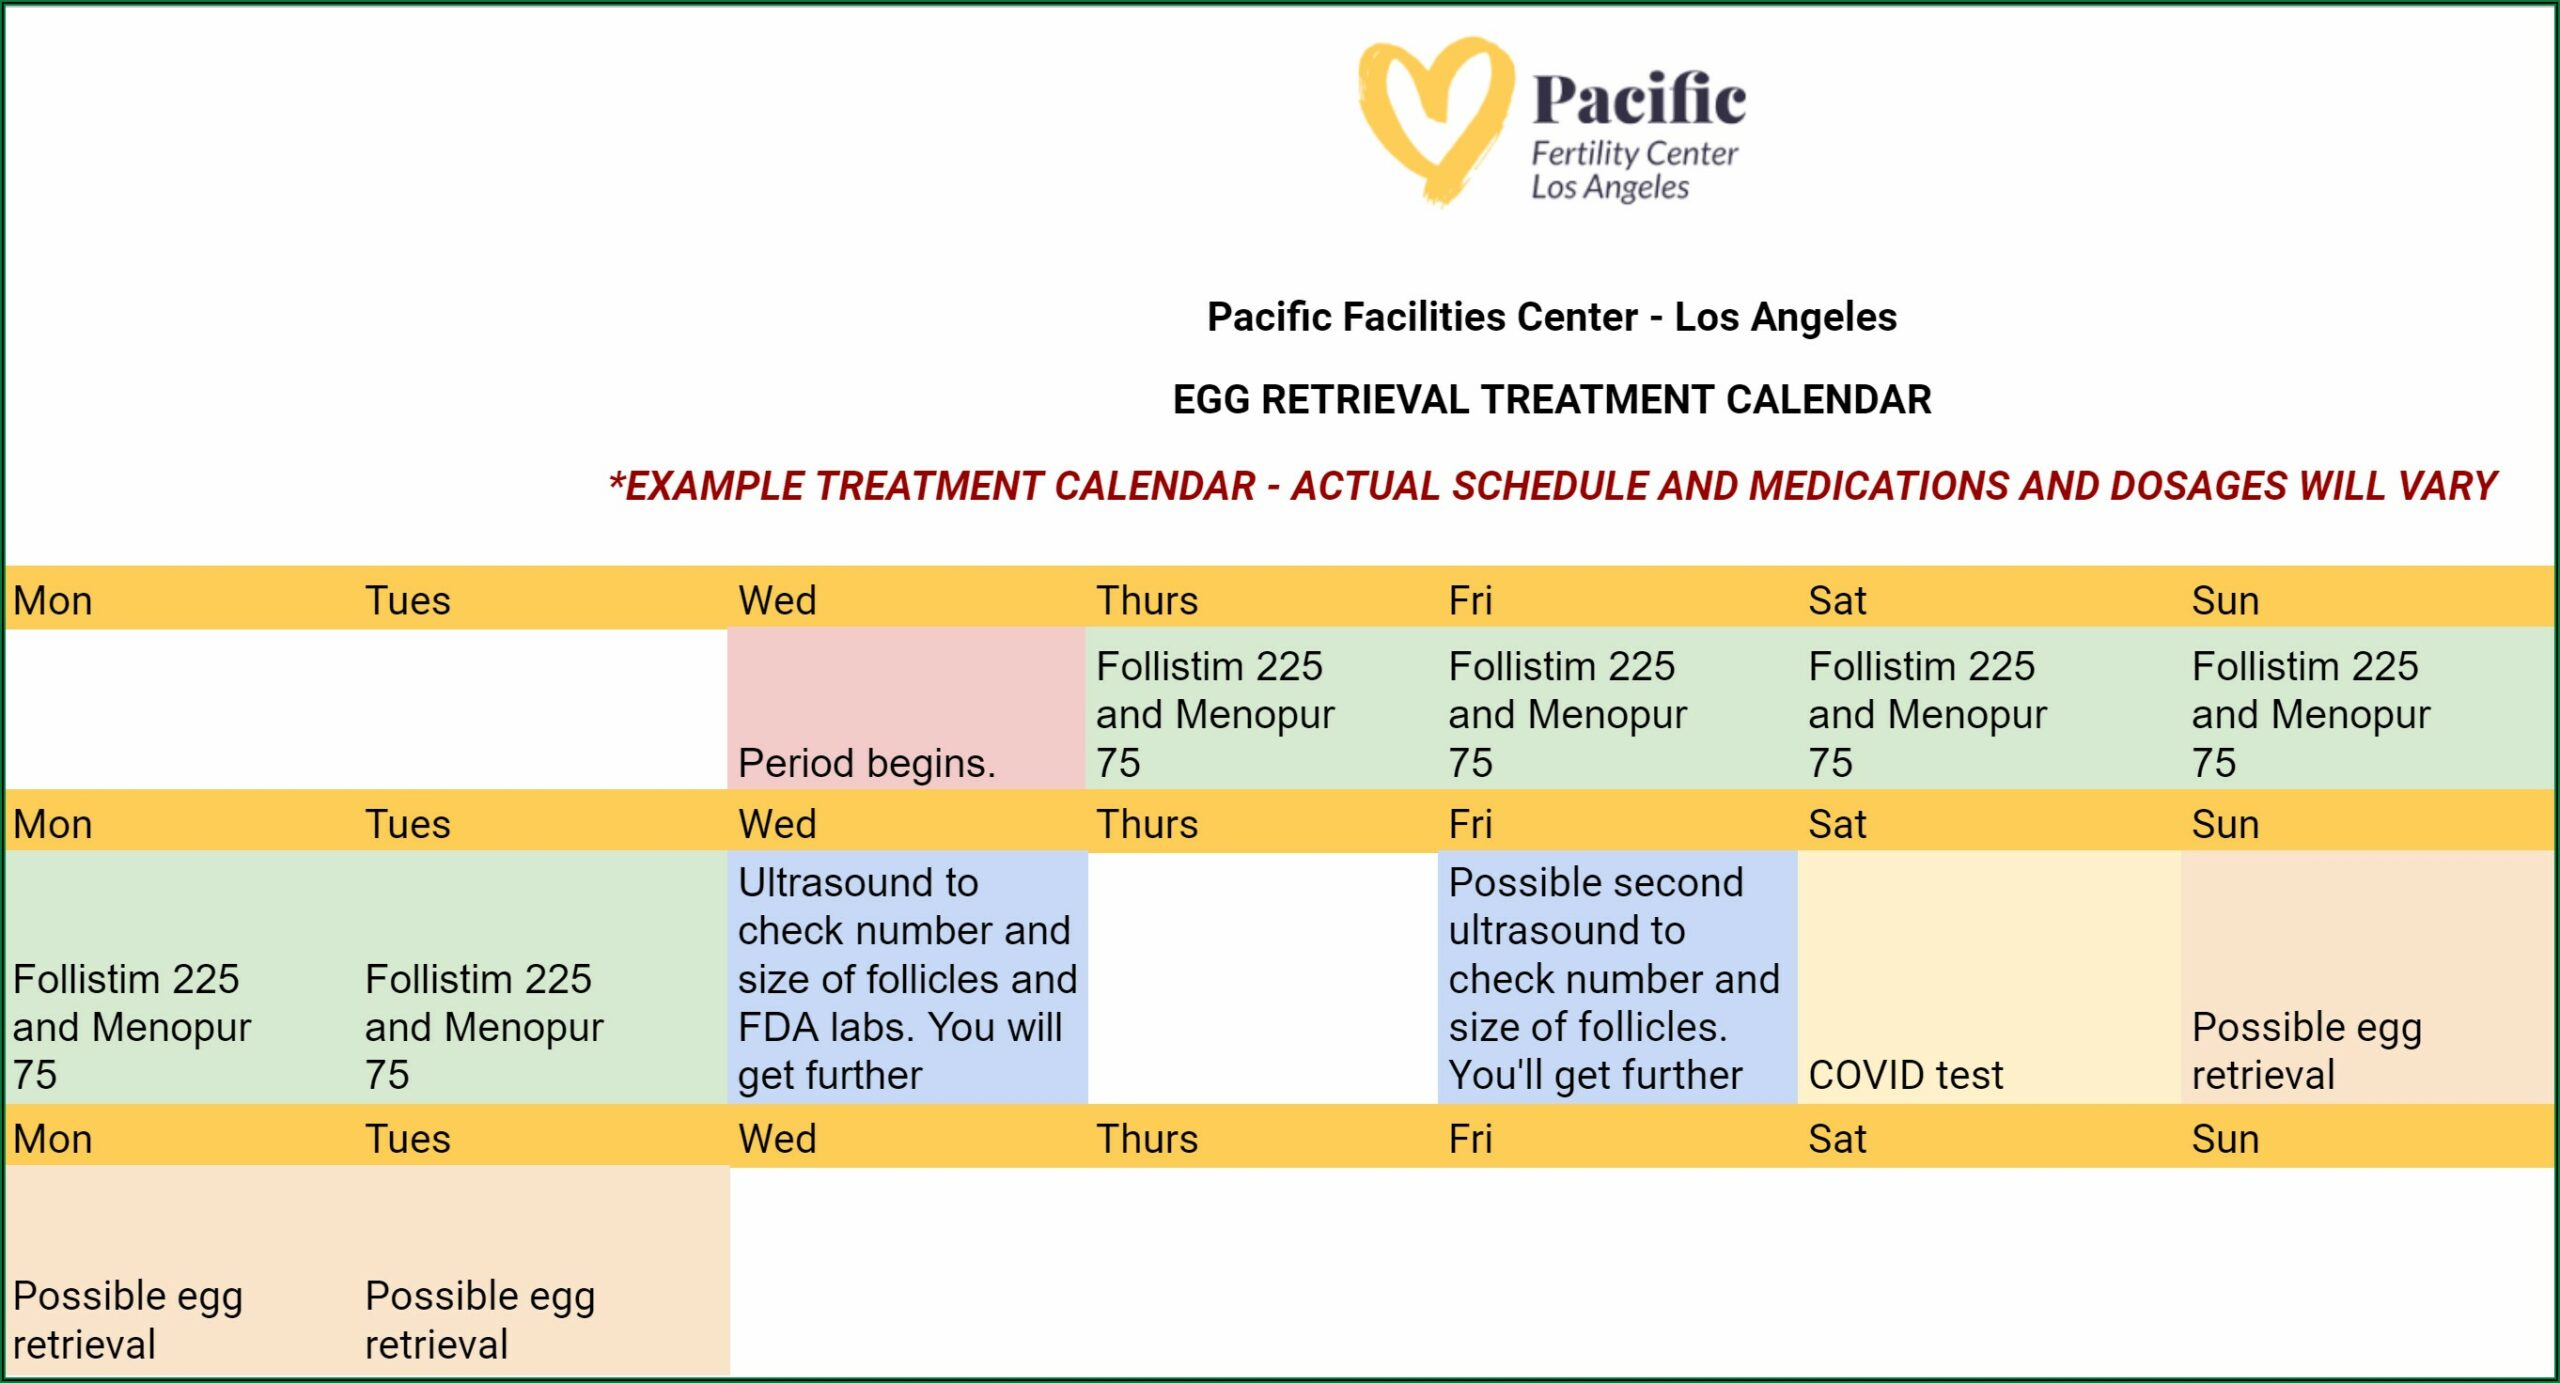 Ivf Cycle With Pgs Timeline